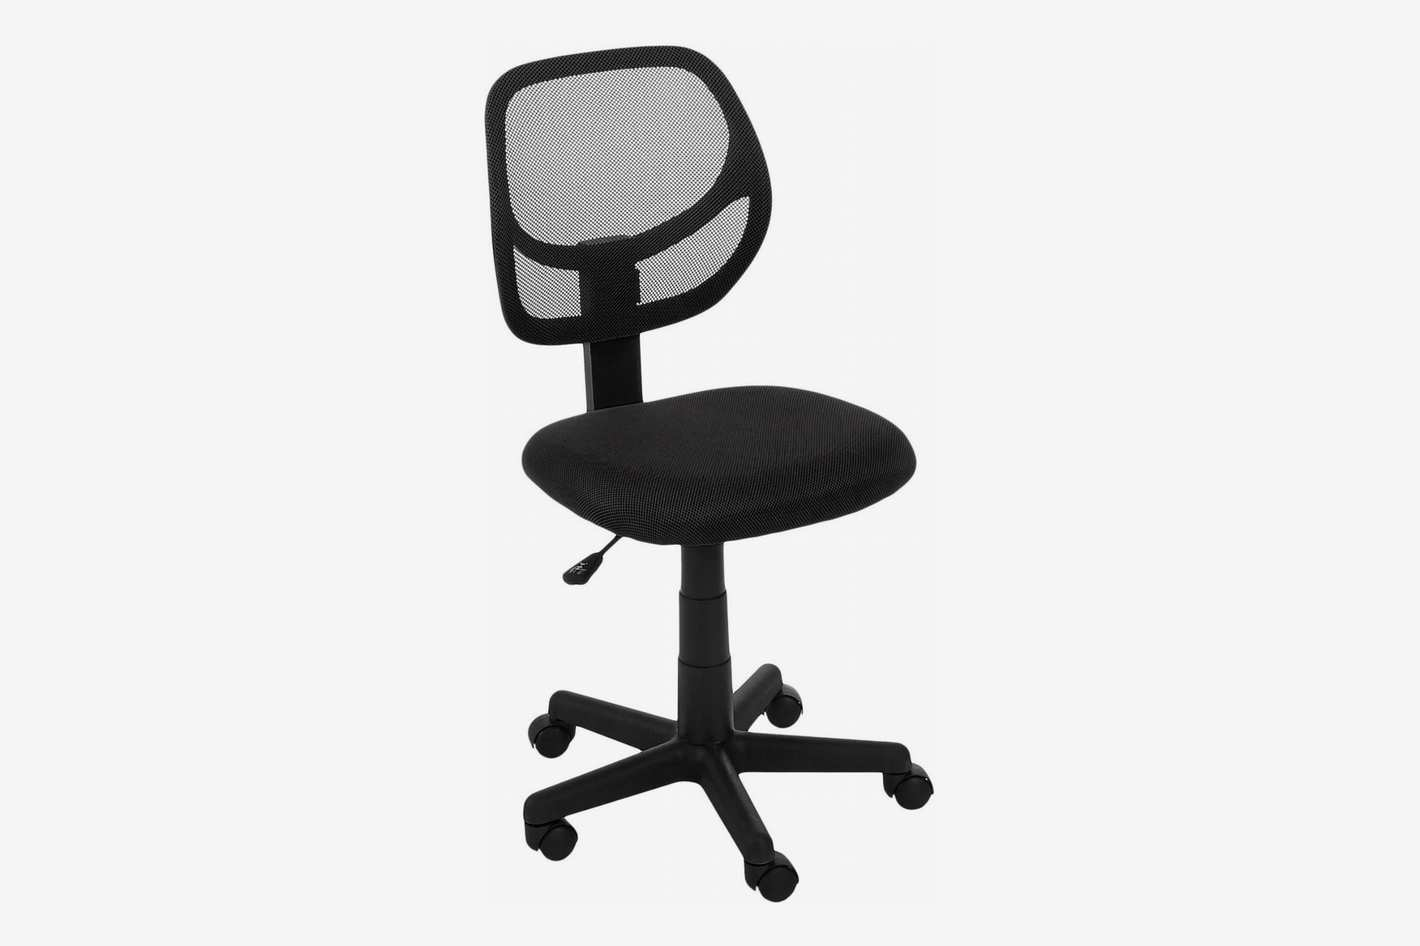 Office Chair Armrest Best-rated (less expensive) office chair